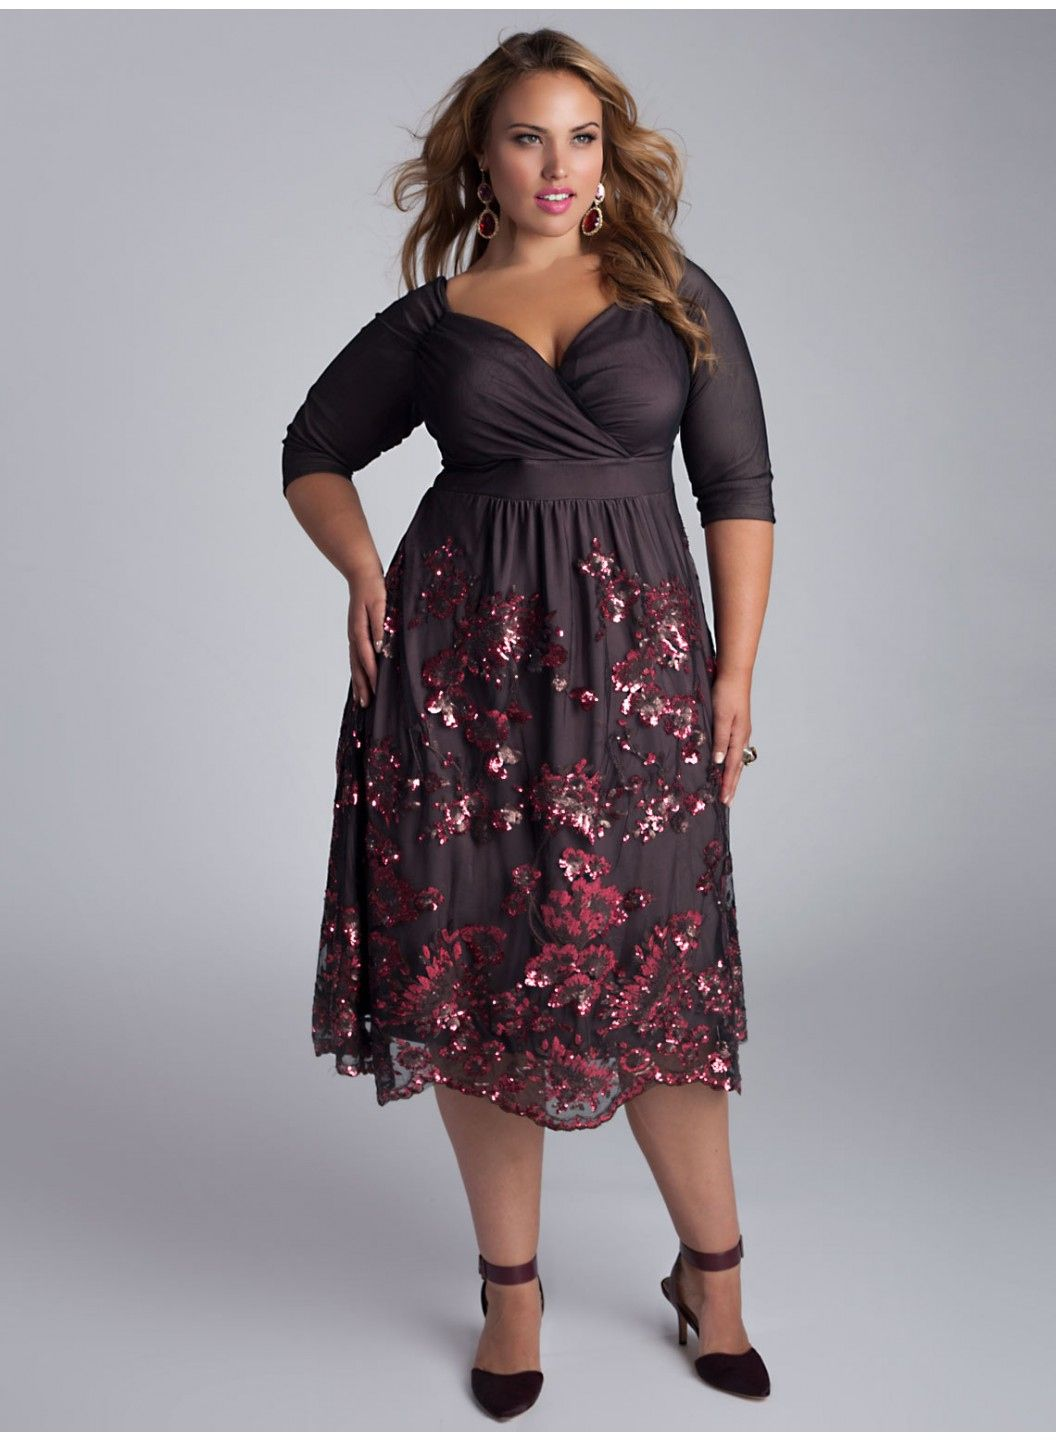 Size 16 Dress For Wedding Guest